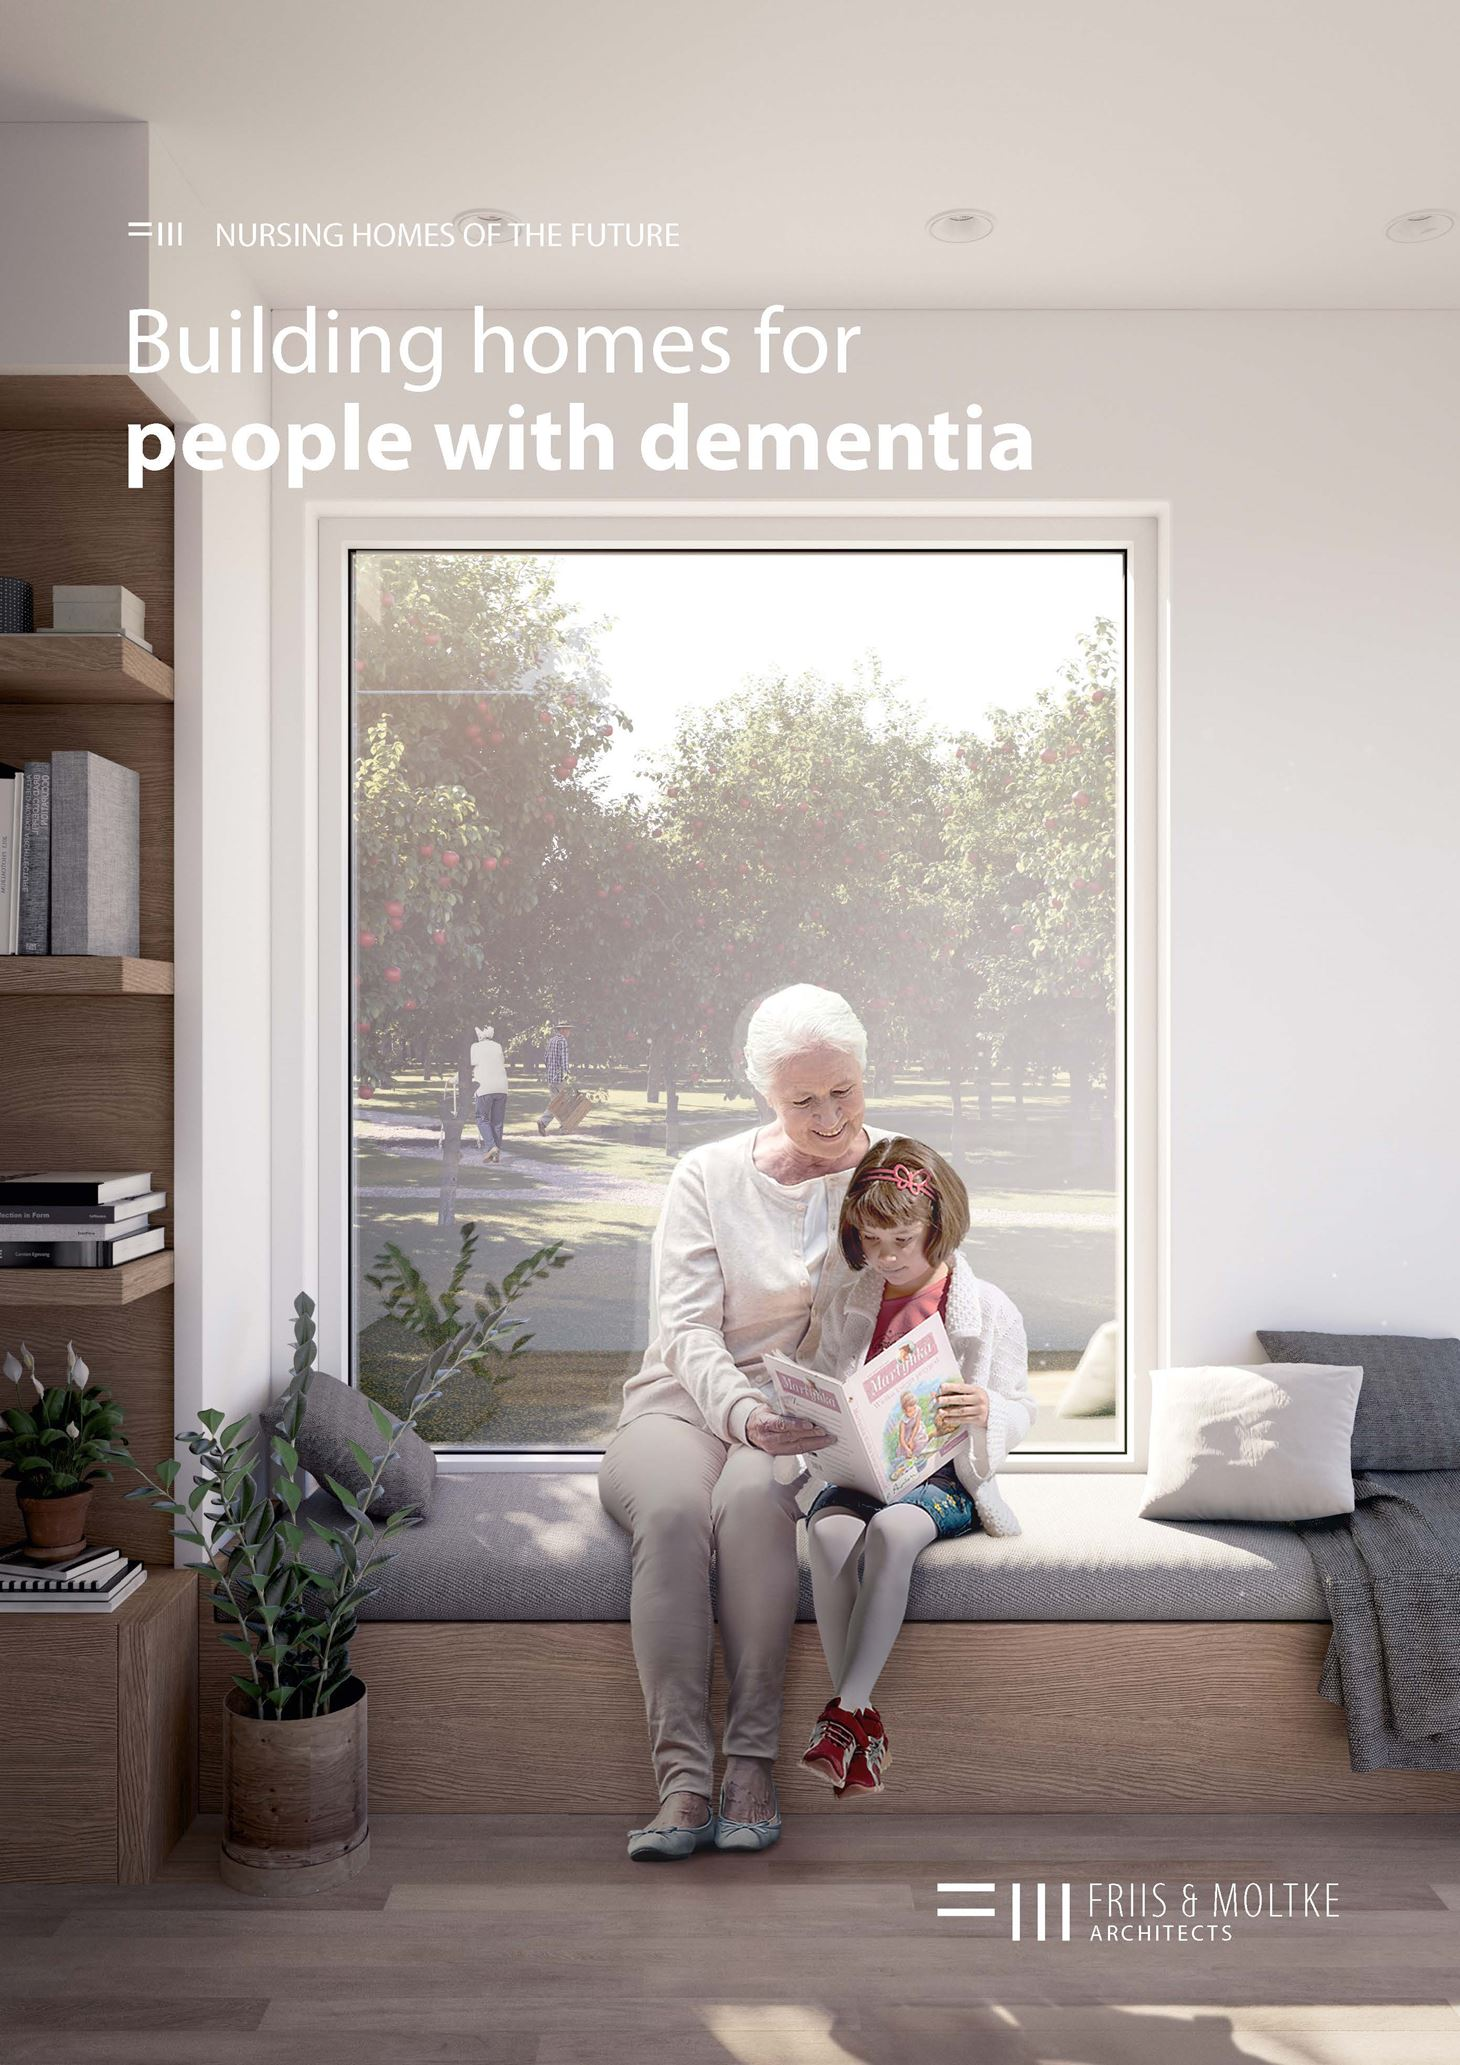 Nursing Homes of the Future